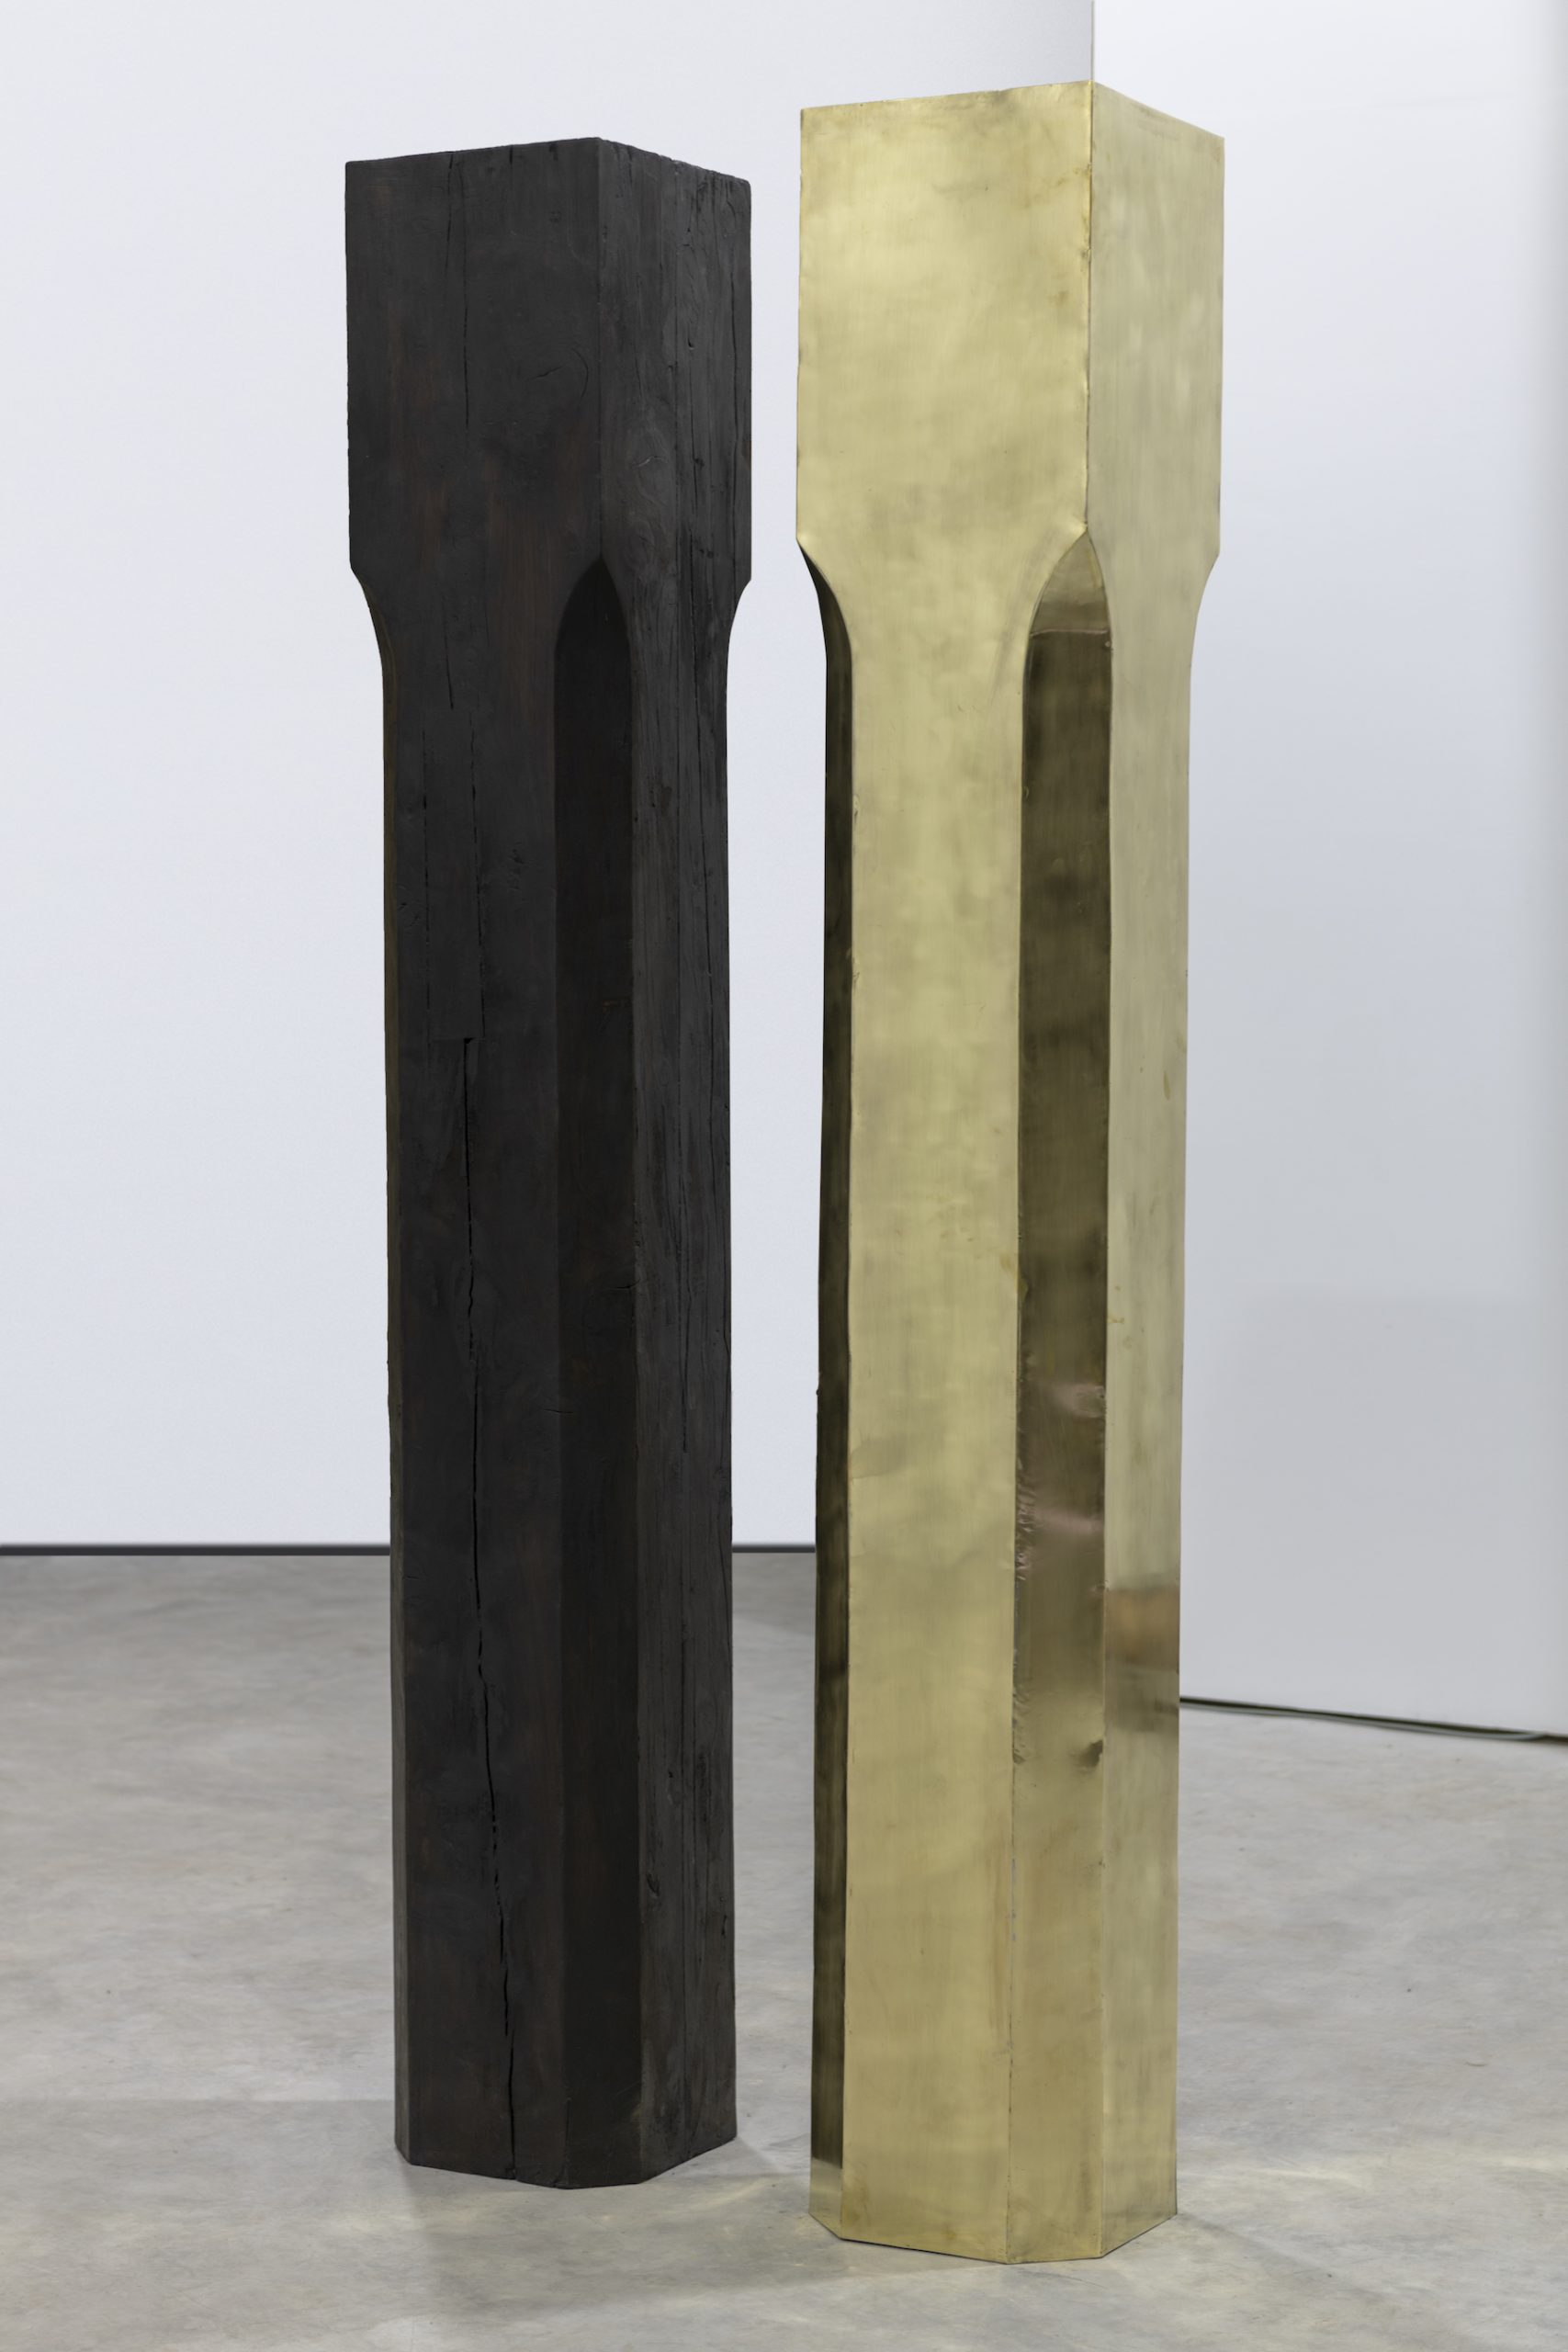 Re-enactment Act II, 2020, Burnt wood and yellow copper, 30 x 30 x 200 cm (each)